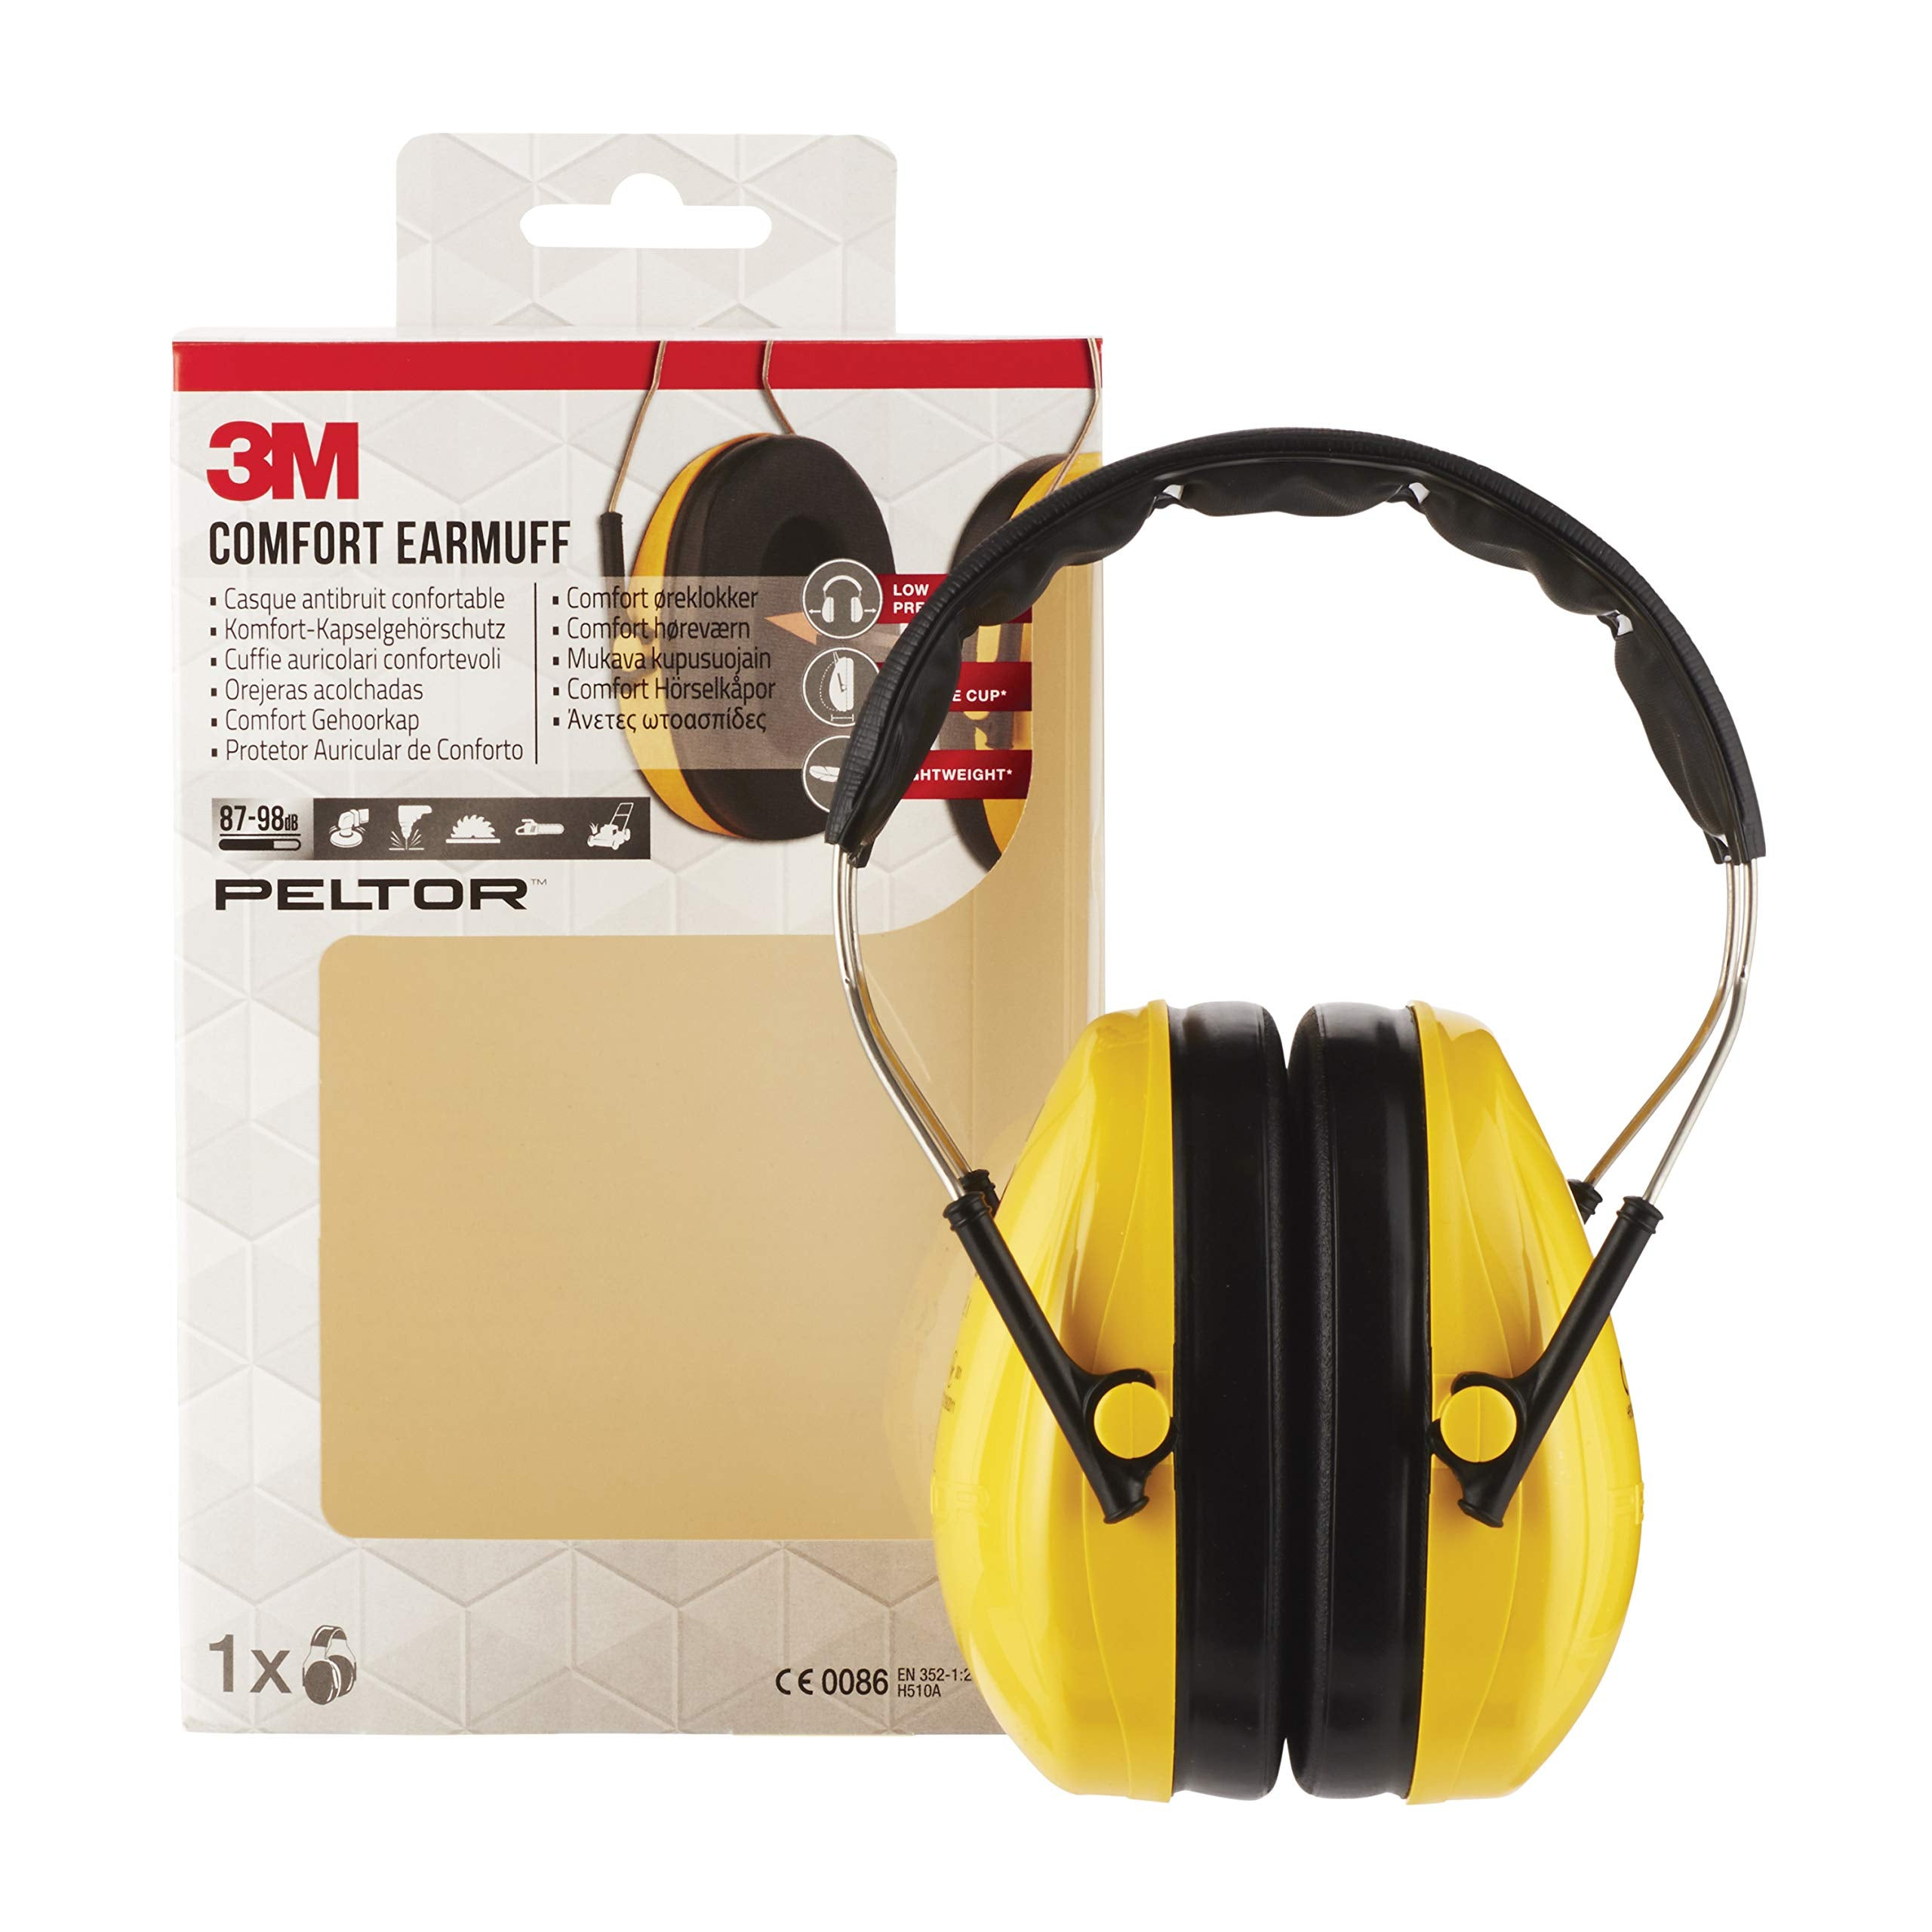 3M H510AC Casque de protection auditive de confort Jaune